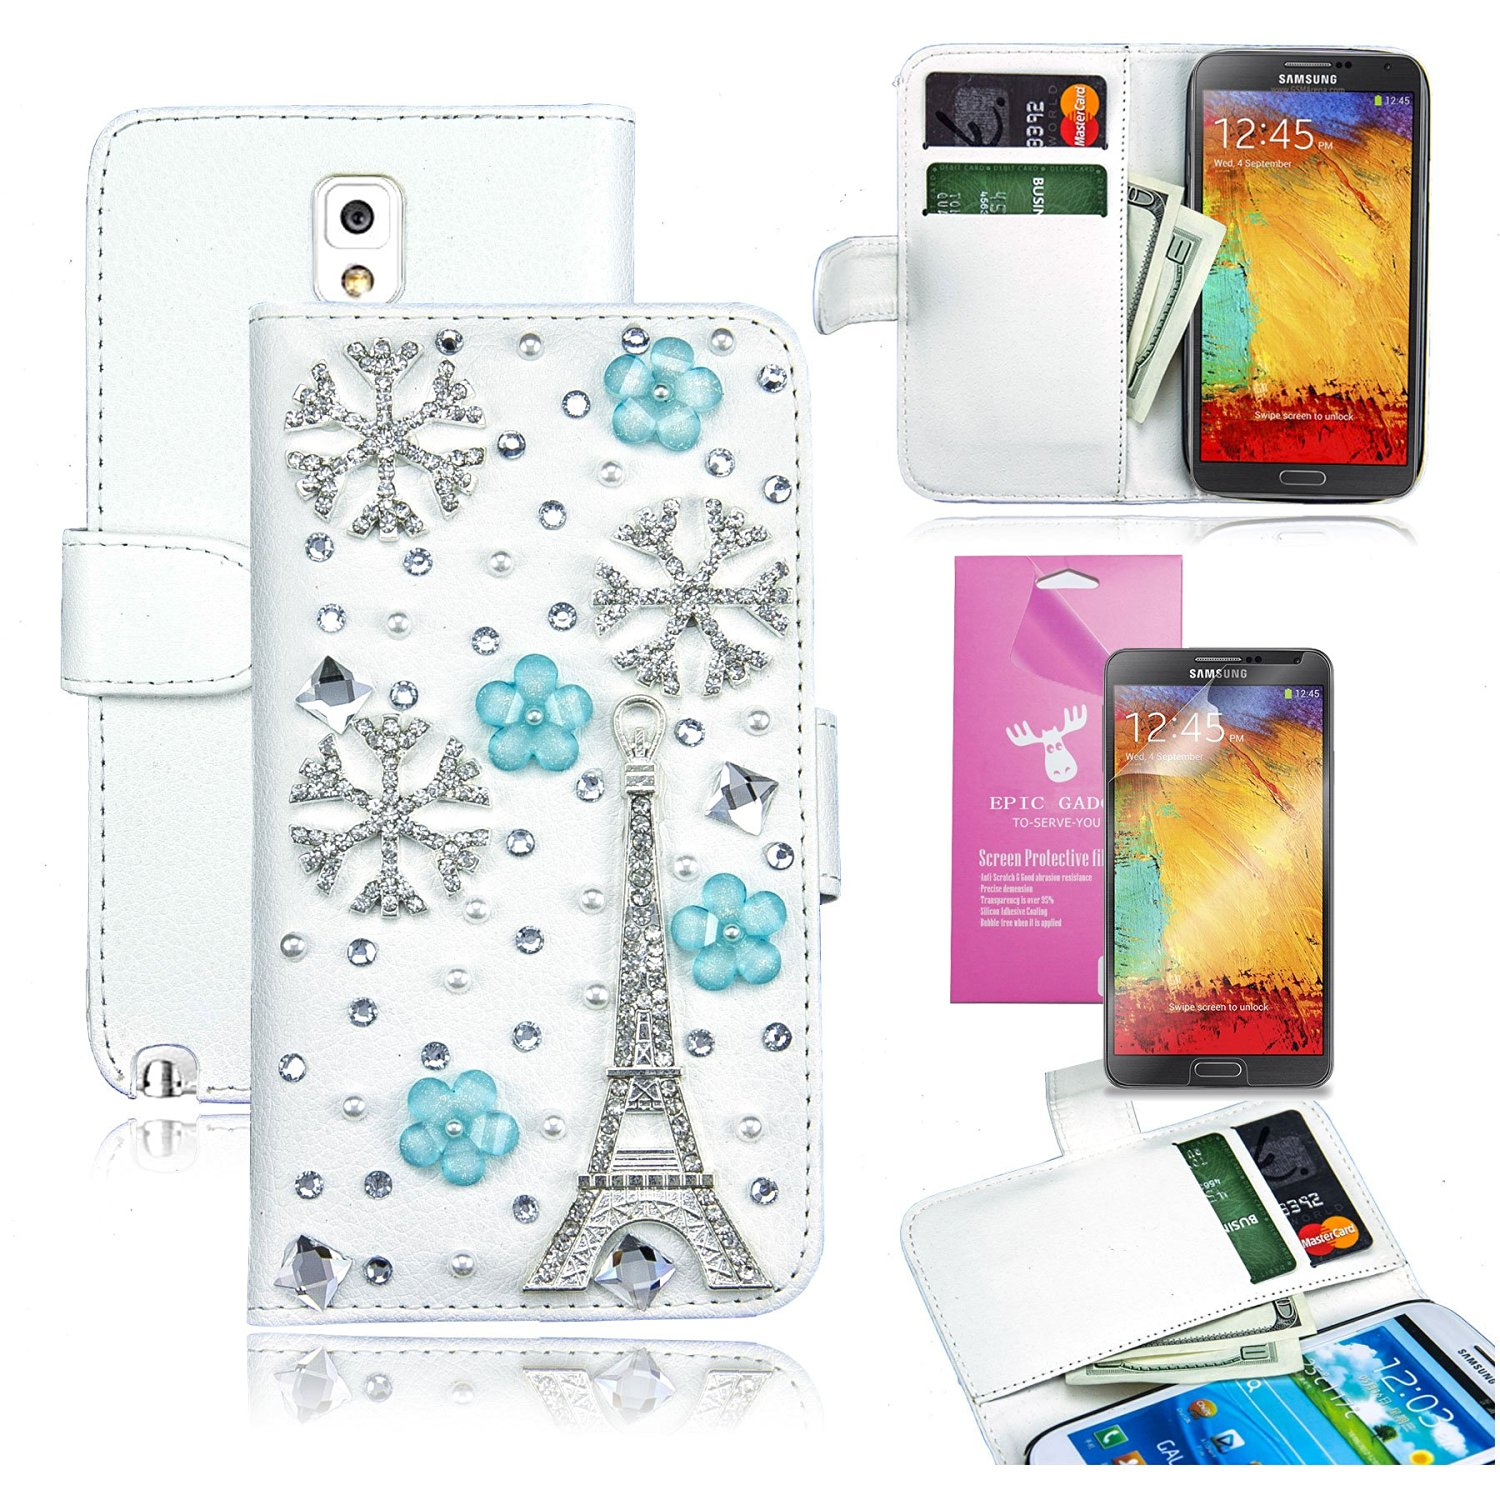 EpicGadget(TM) For Samsung Galaxy Note3 Handmade Luxury Champagne Gold Crystal Bling Bling White PU Leather Case With Crystal Bow Knot Wallet Case Magnet Flip Cover With Credit Card Holder Pouch + Note 3 N9000 Screen Protector + 1 Stylus Pen (Random Color) (US Seller!!) (White Eiffel Tower